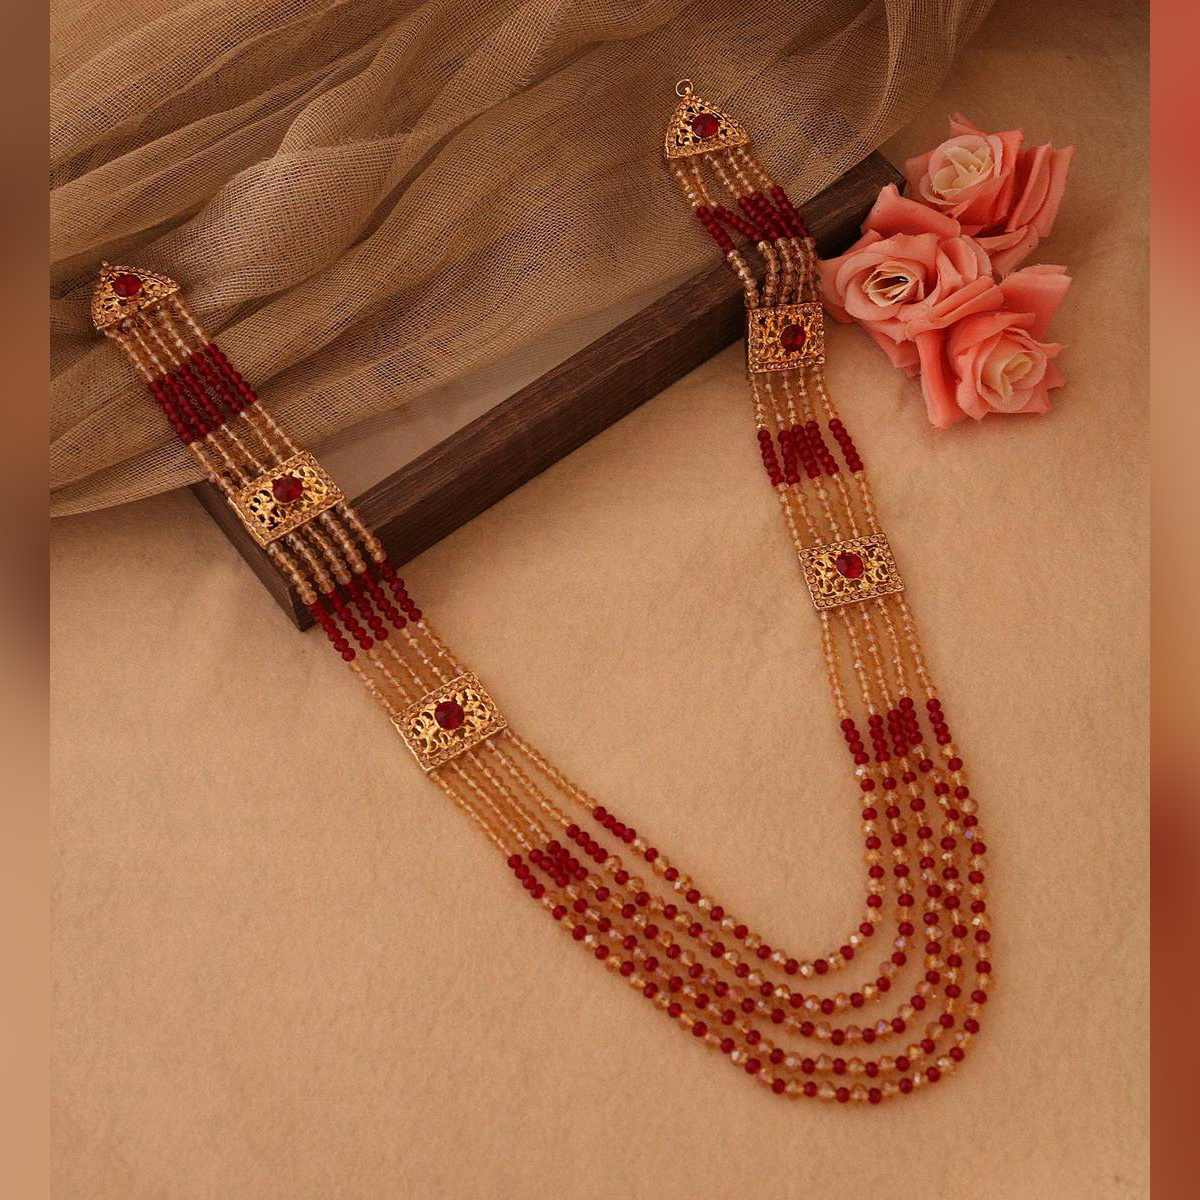 Hue Traditional Pearl Beads Bridal Wear Necklace - Wedding Jewelry Set for Women..